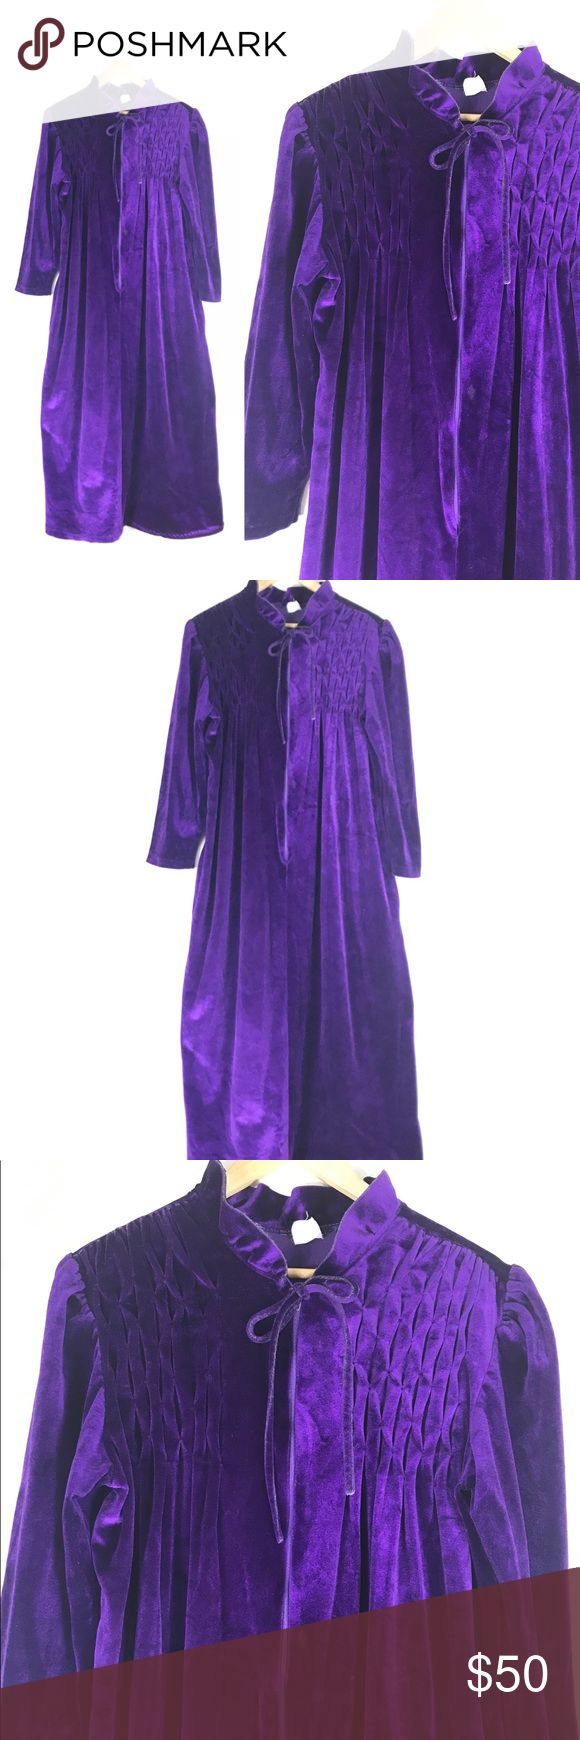 "1960s purple velvet duster robe 🦄 VTG maxi gown 1960s purple velvet maxi duster robe! lovely pleating on the chest with bow tie and partial front zipper. looks like this one was used as a smoking jacket because there are a few small burn holes, see photos. this material attracts a lot of fuzz so there is some thats a bit hard to get off. otherwise excellent condition! tag is too worn to make out.  MEASUREMENTS:  laying flat, double when appropriate 50.25"" long 24"" bust 18"" shoulder to…"